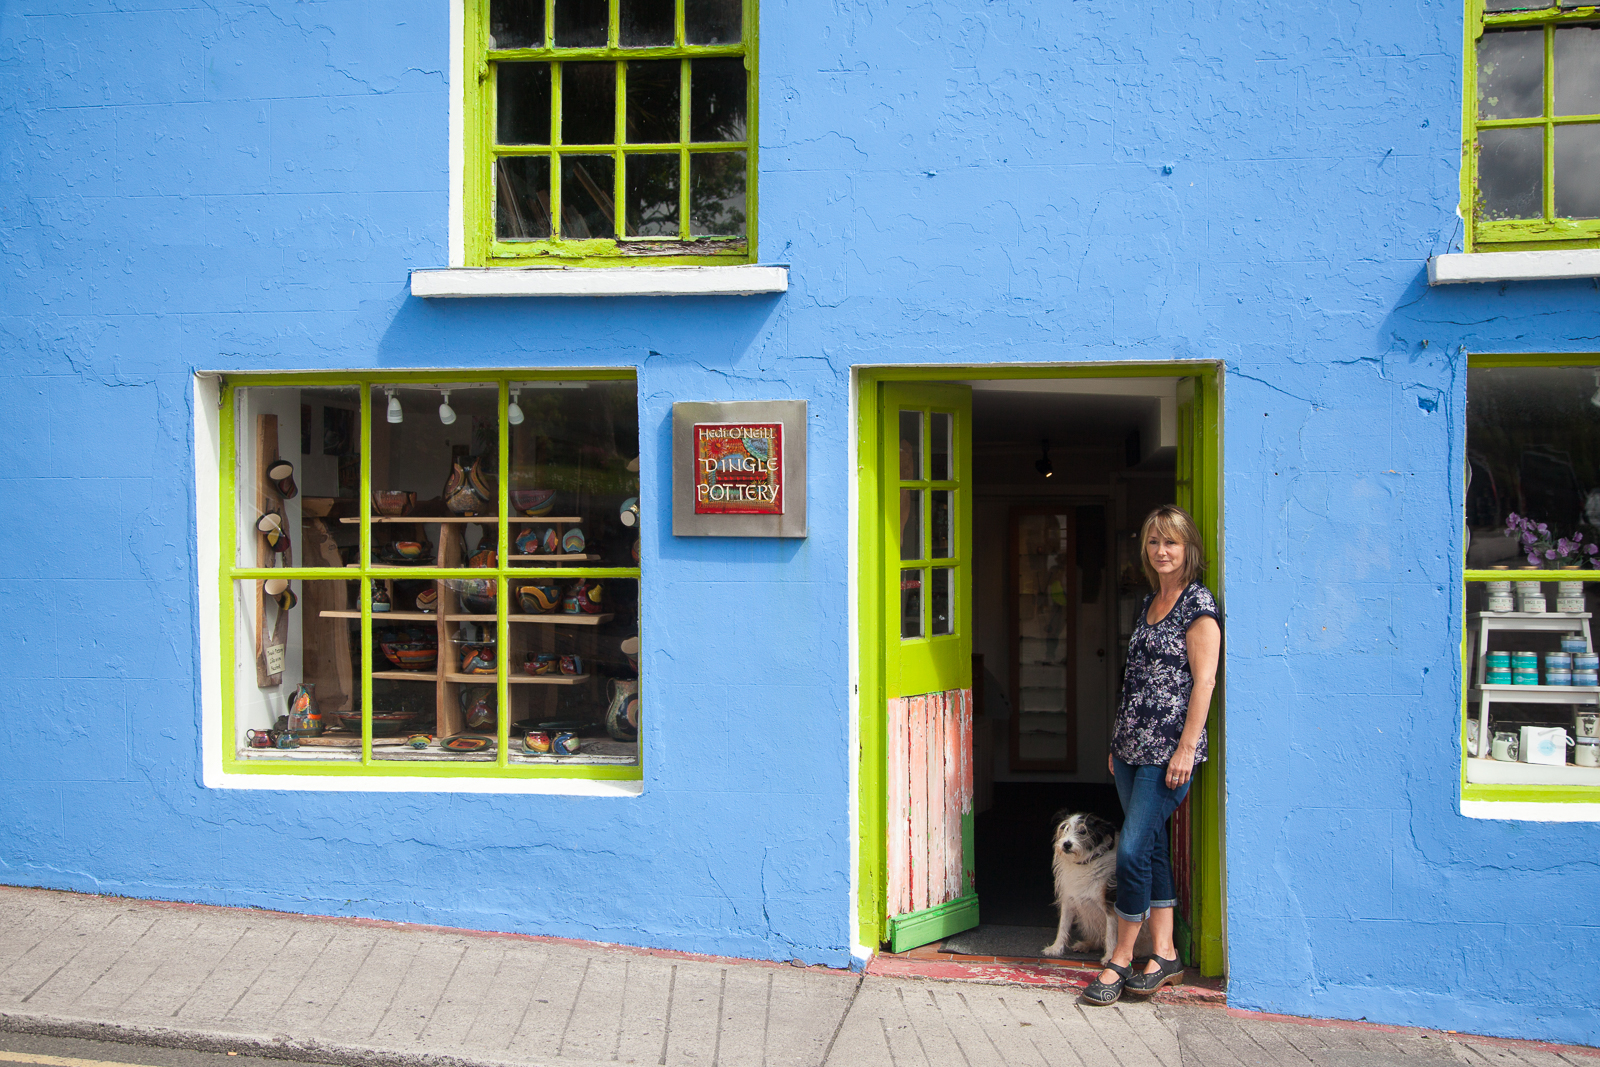 The Dingle Pottery Shop on Green Street